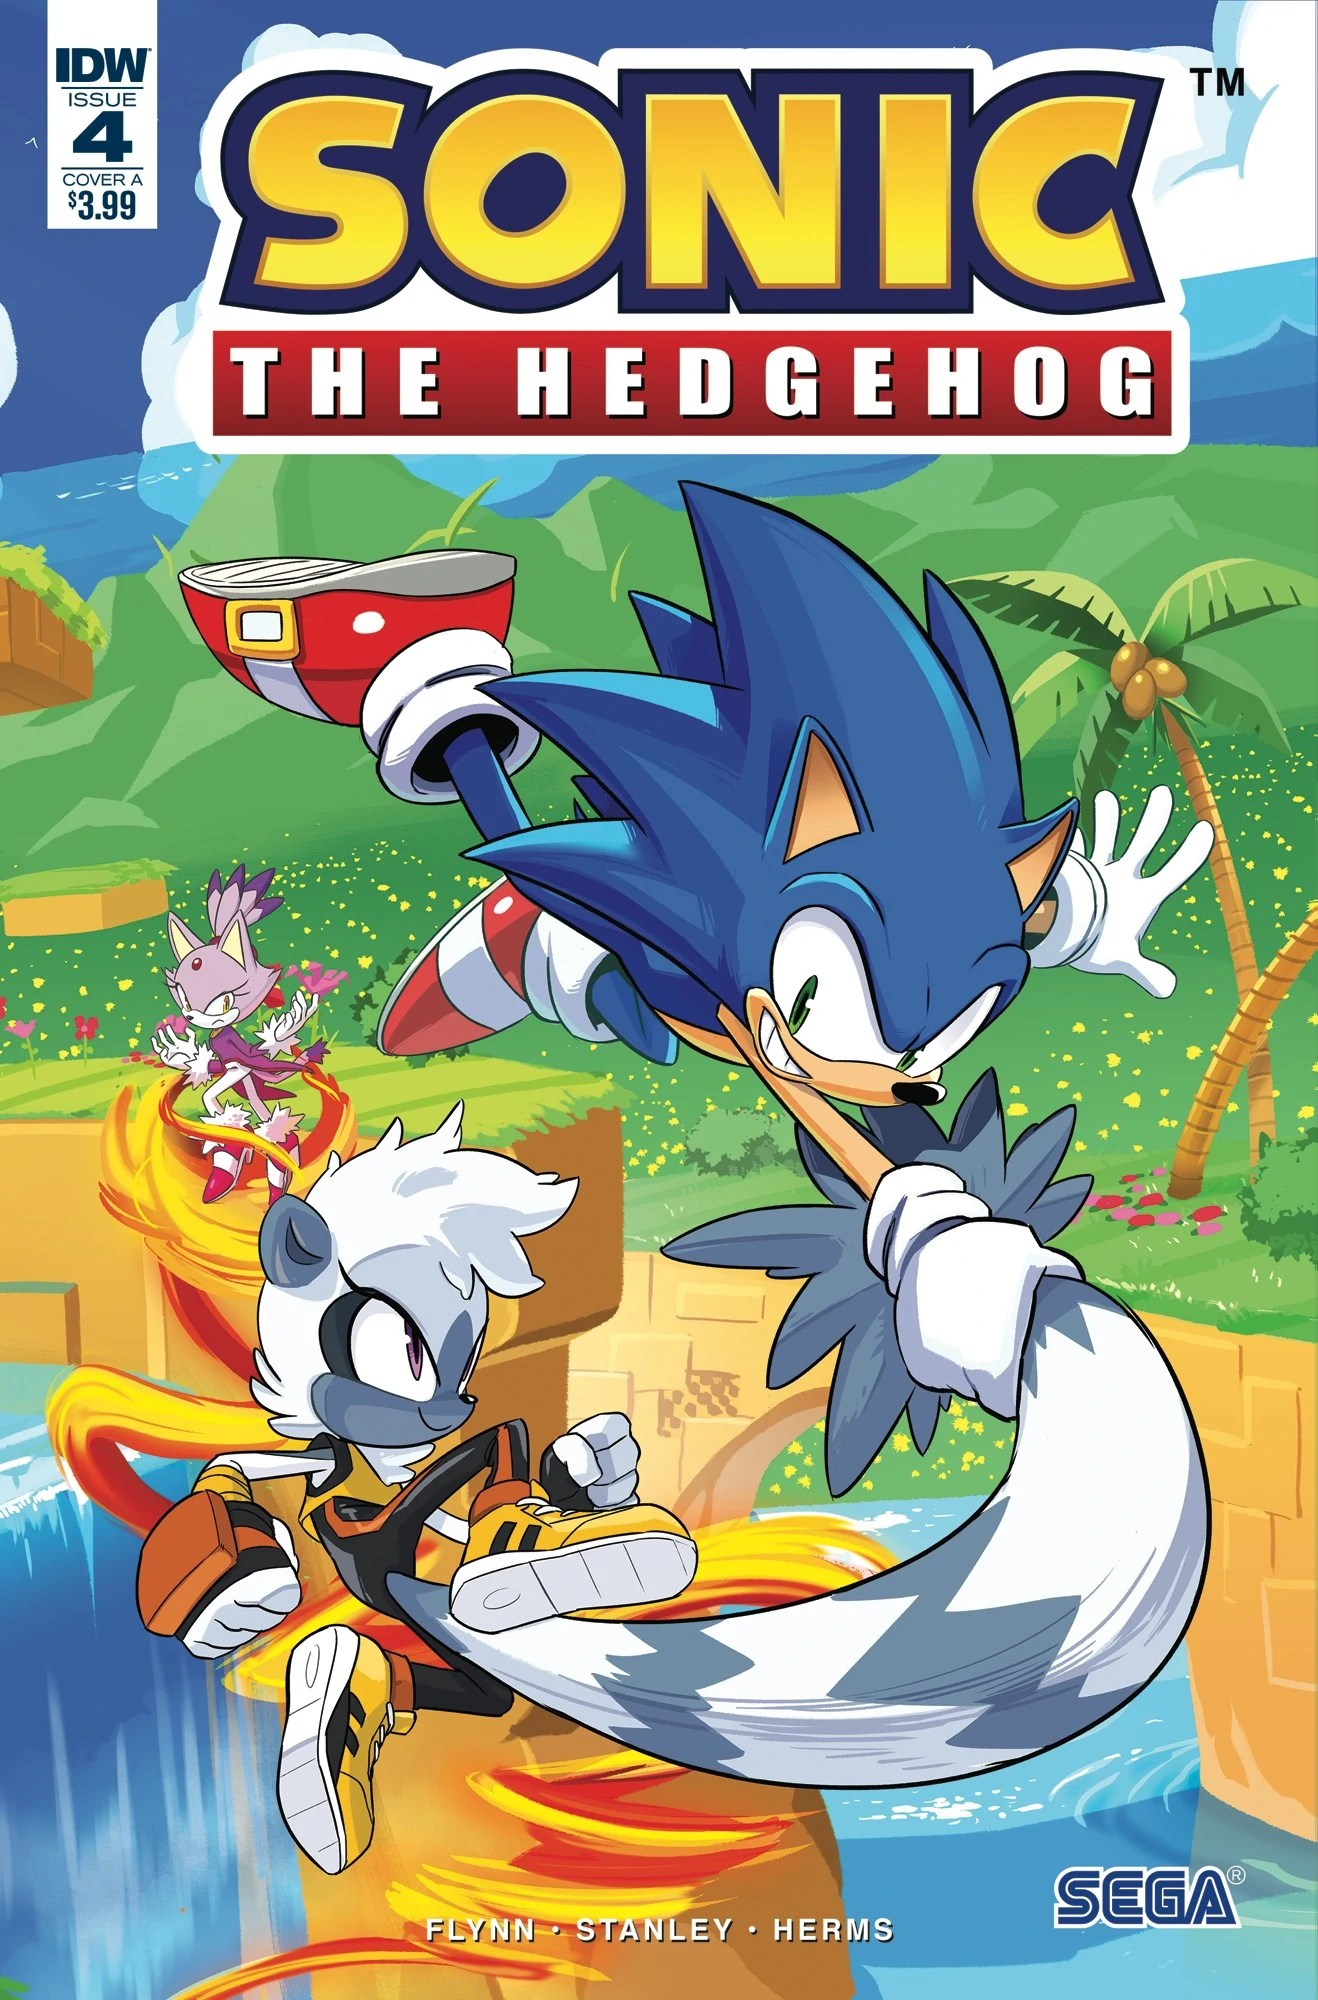 Idw Sonic The Hedgehog Issue 4 Sonic News Network